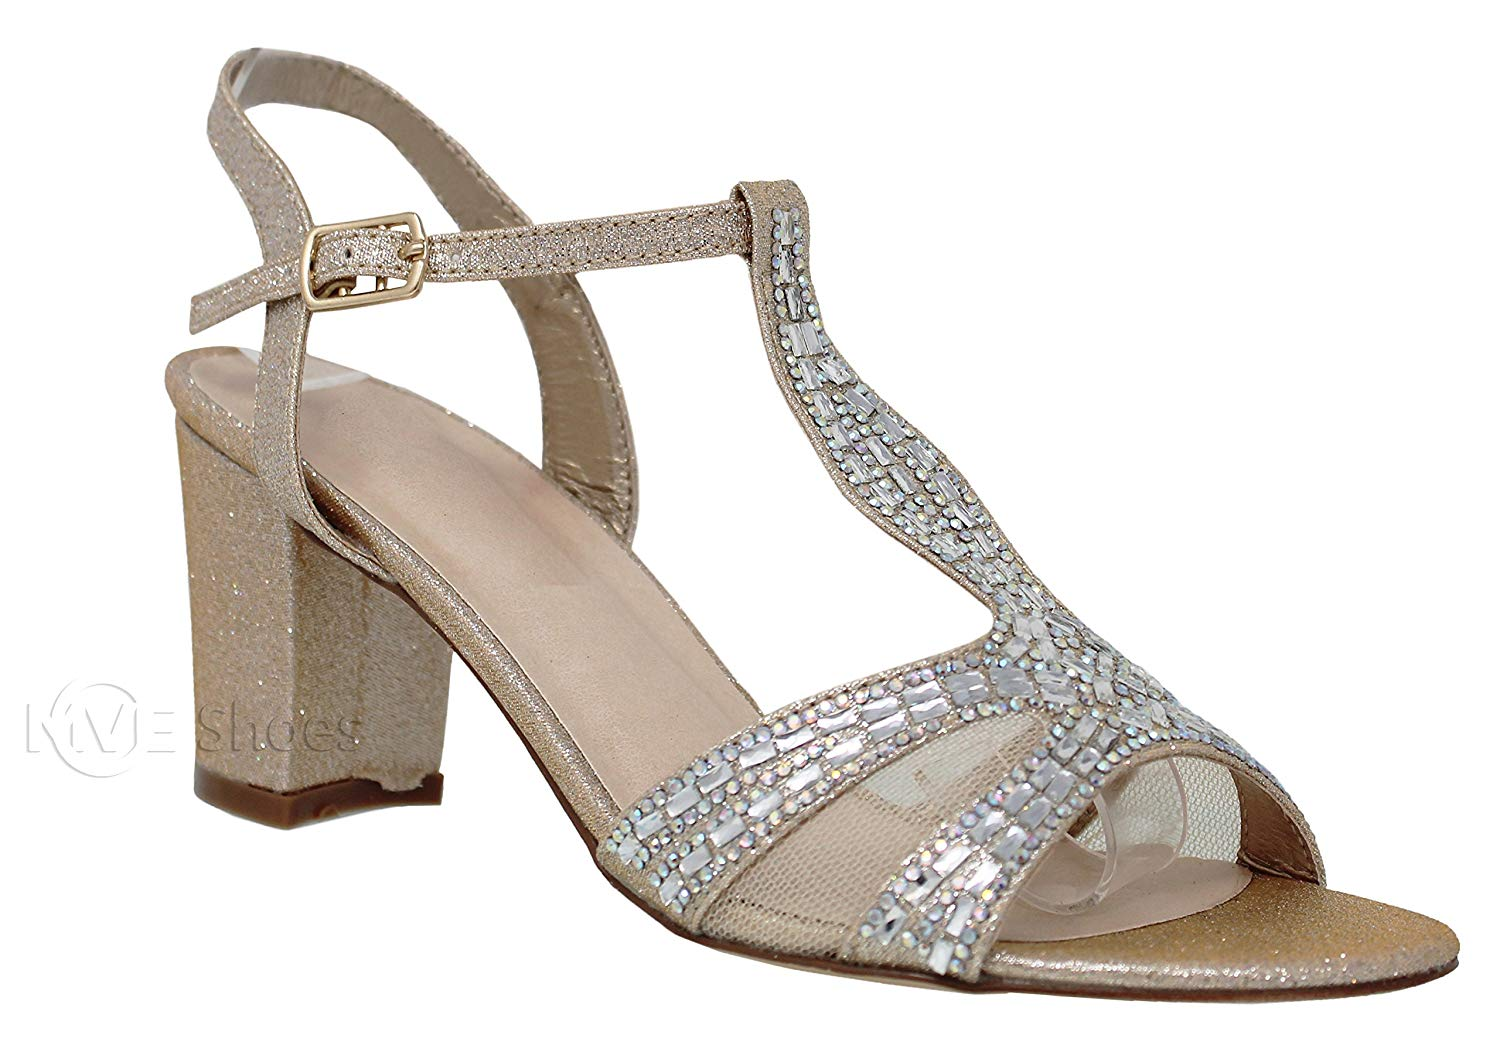 MVE Shoes Women's T Strap Open Toe - Rhinestone Block Heel - Sparkle Party Sandal - Ankle Buckle Sexy Low Heel